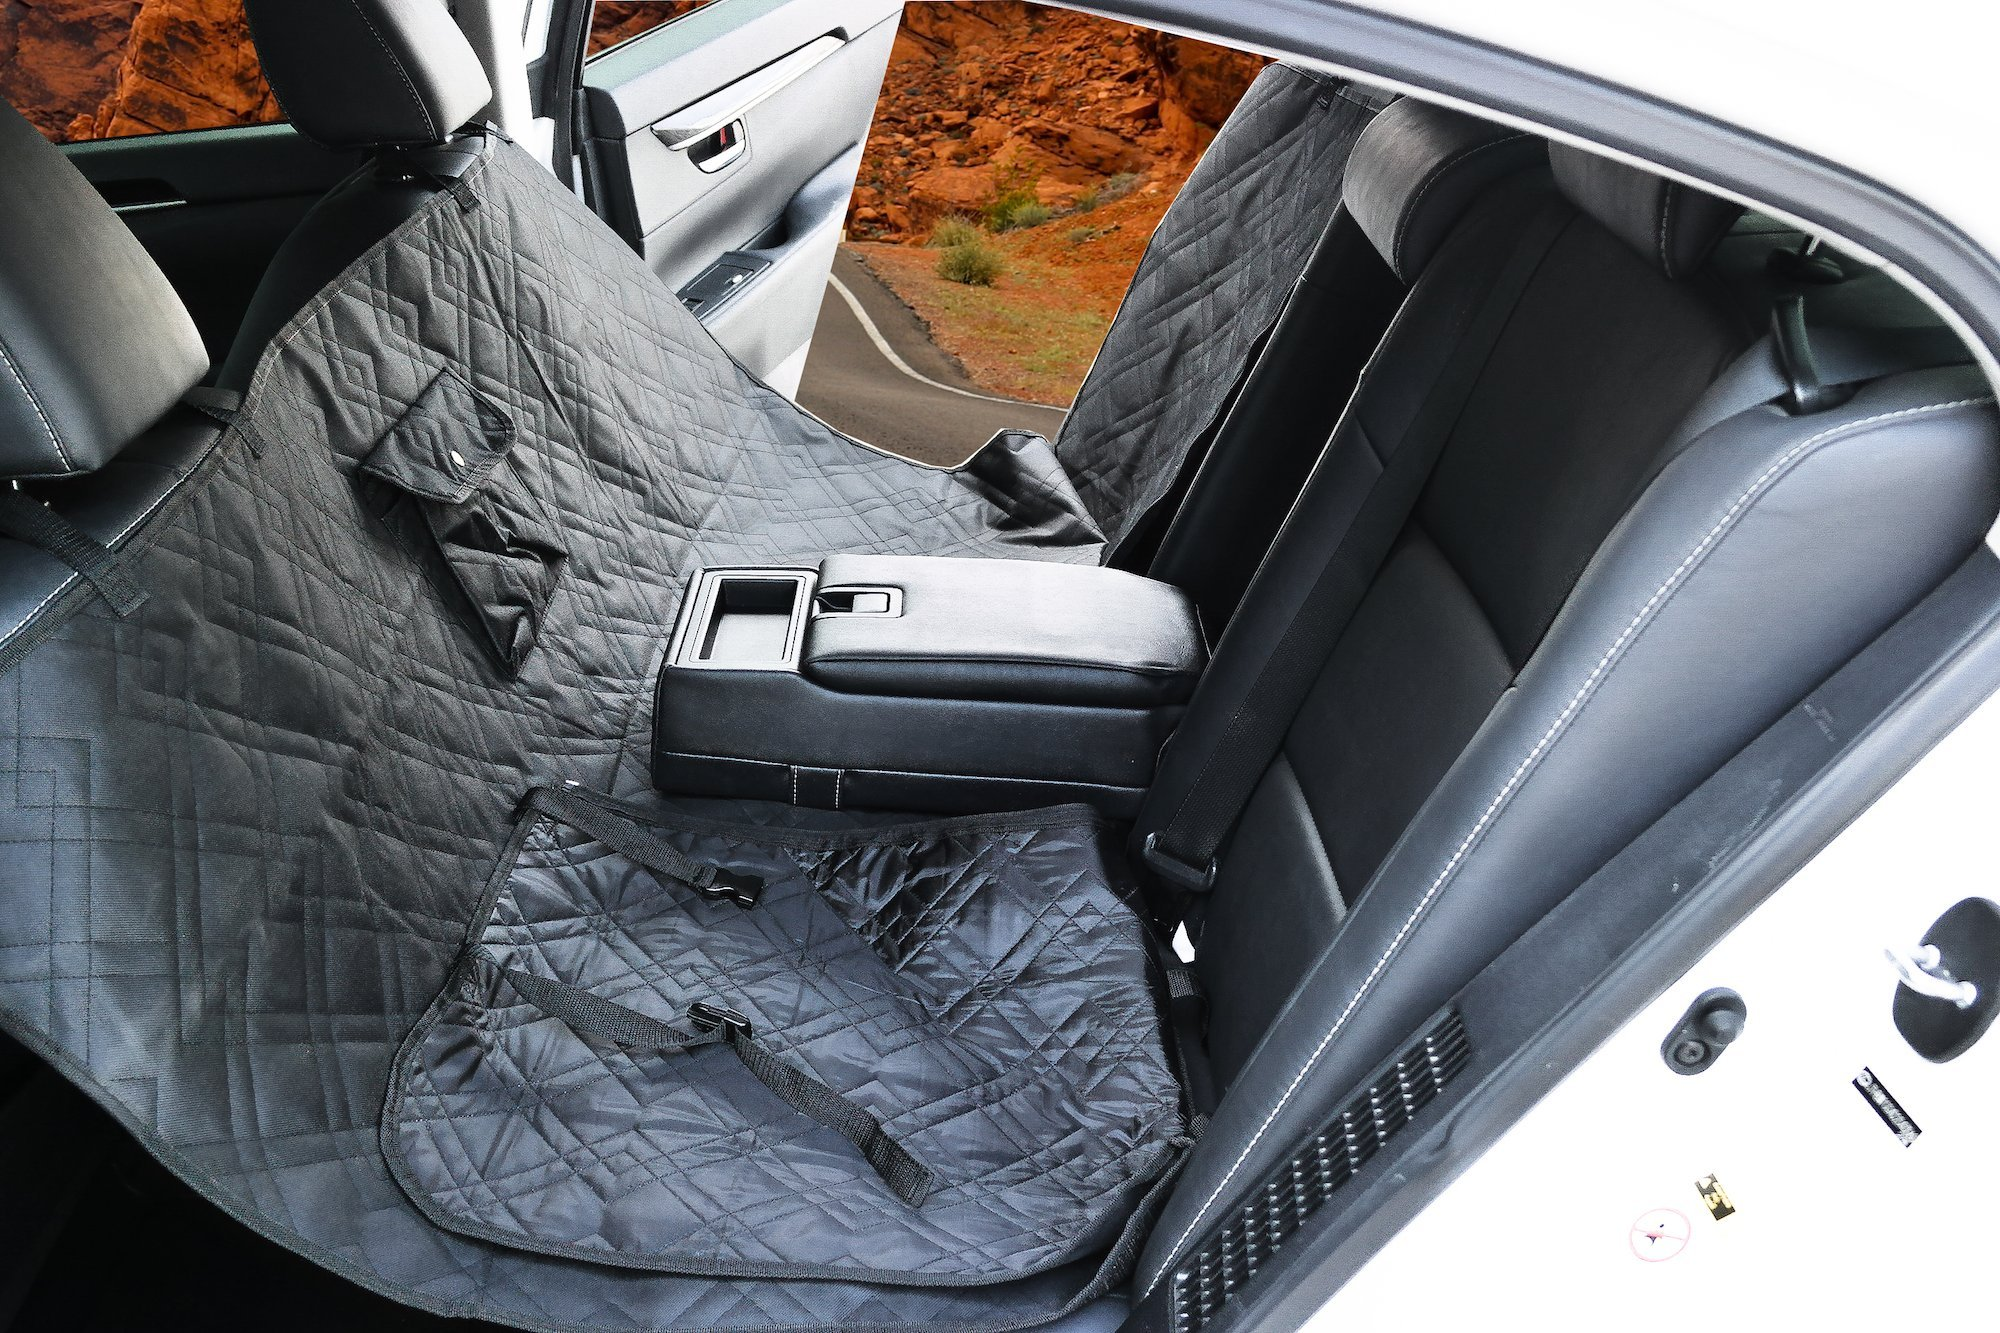 Pet Seat Cover by MADY | Dog Car Seat Cover Backseat cover for Pets - Hammock, Quilted, Padded, Durable Pet Seat Covers for Cars Trucks and SUVs - KEEP THE PAWS OF YOUR CARS! - Black, Nonslip